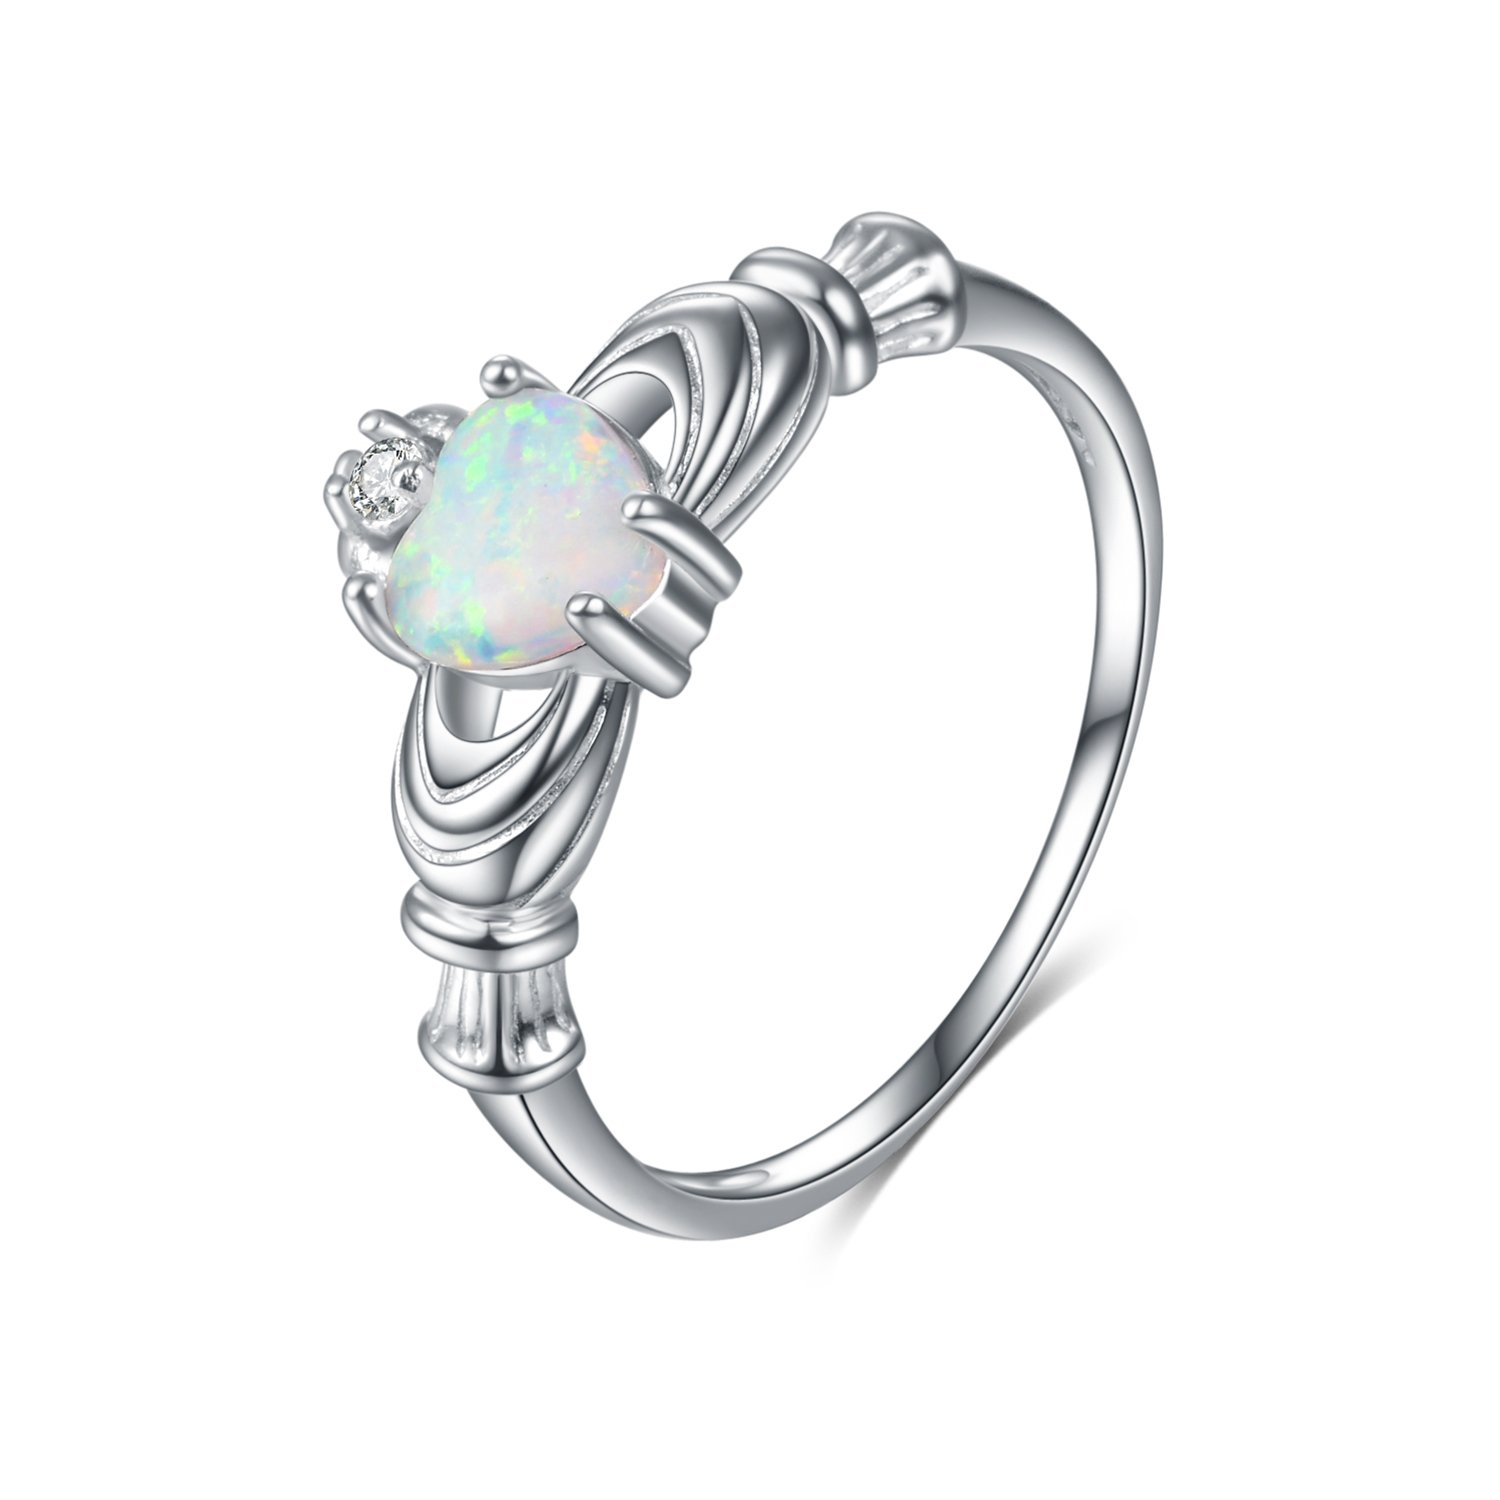 amazon sterling silver irish claddagh ring simulated fire opal Spoill Lab amazon sterling silver irish claddagh ring simulated fire opal promise ring for women engagement jewelry